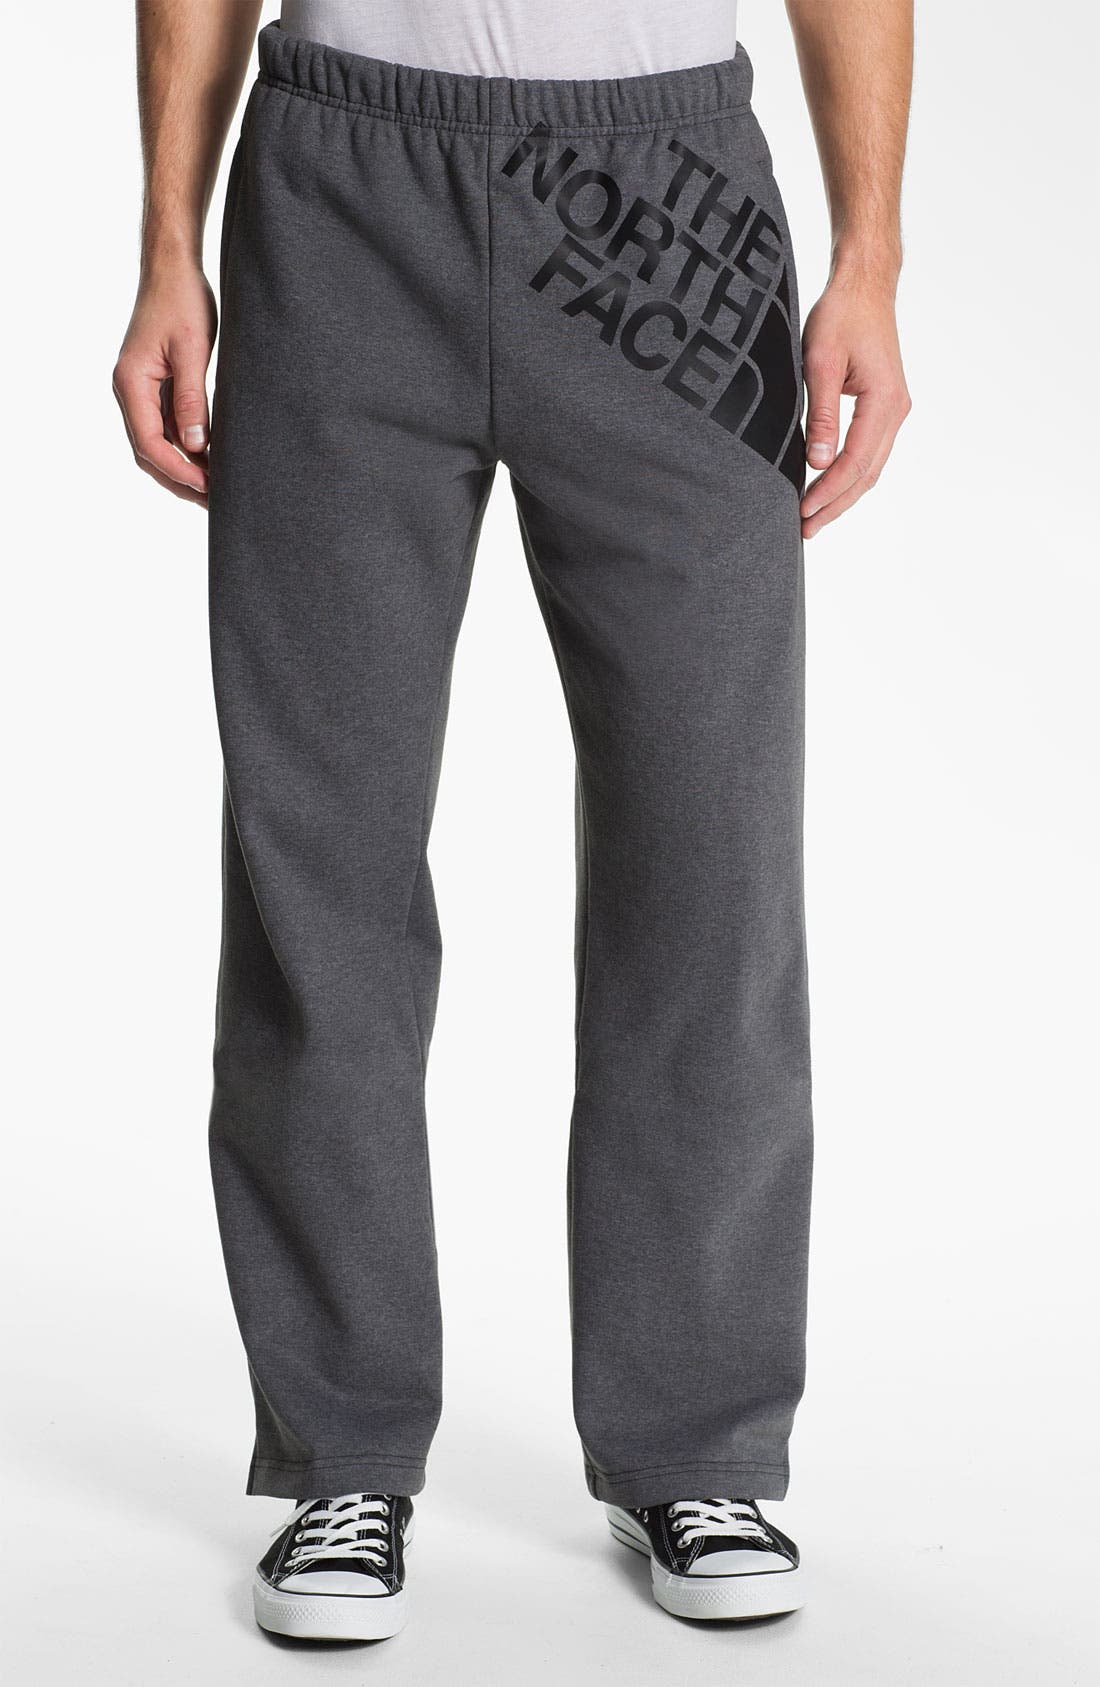 Main Image - The North Face 'Rail Line' Athletic Pants